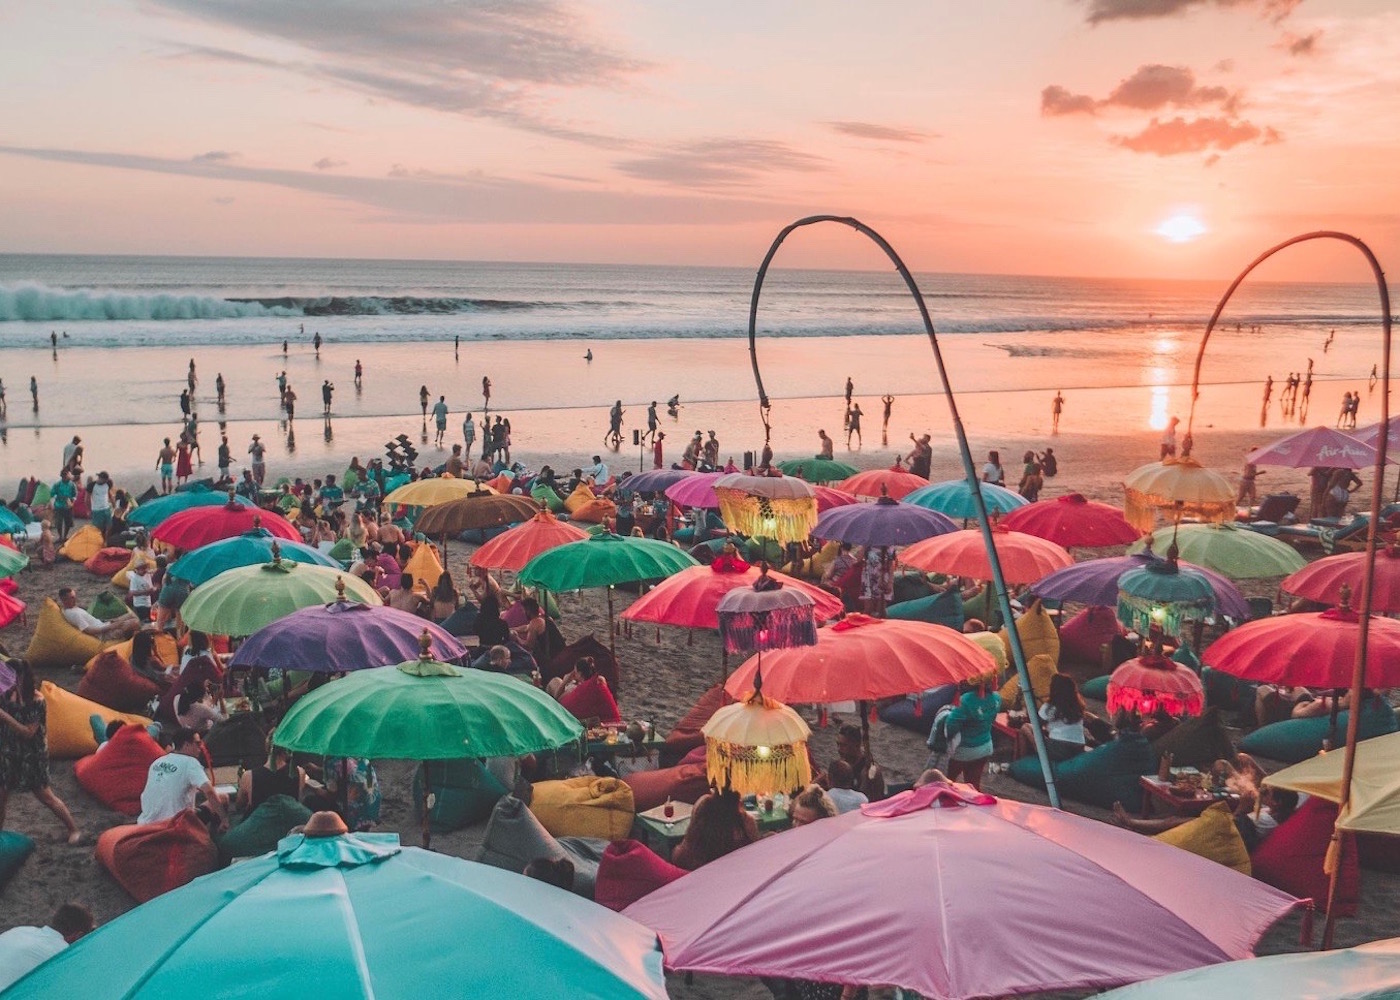 22 Best Beaches in Bali: Where to swim, surf, soak up the sun and live the island dream